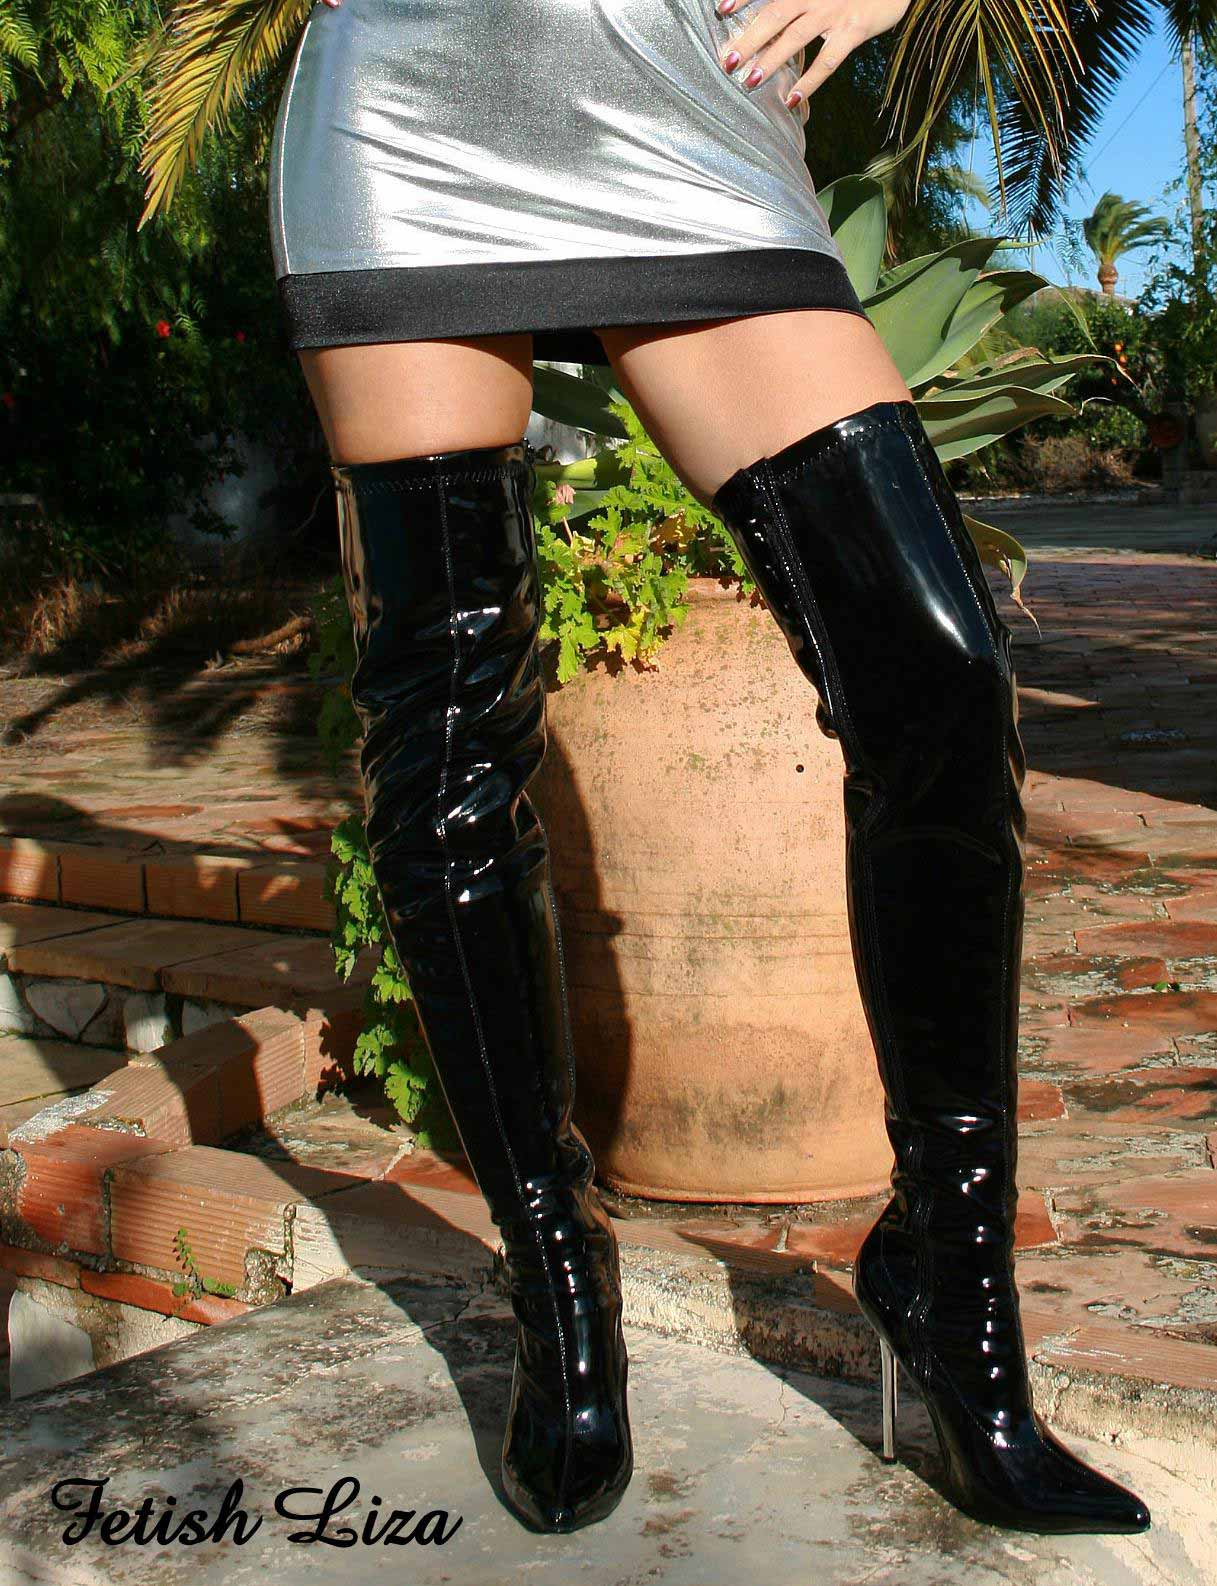 Boots Details 10907a Show Thigh Stretch Size About Black 37 46 Patent Title Erogance High New Original Heels 80wOnPXkN